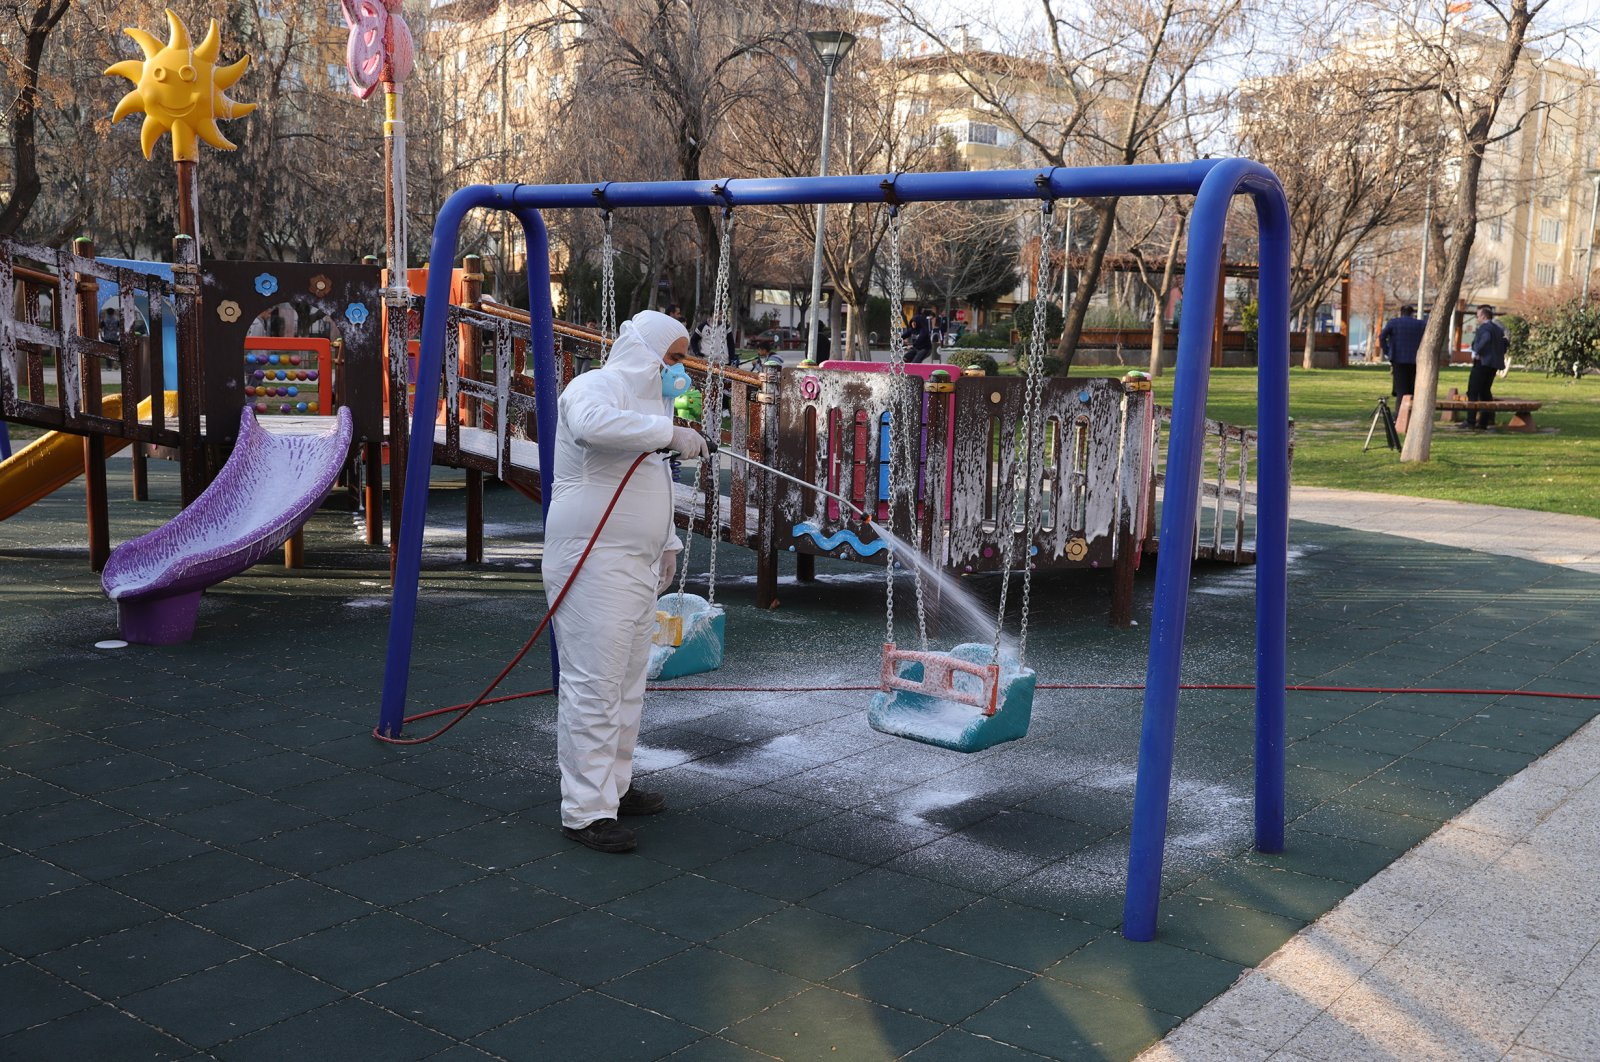 A worker disinfects a playground in Gaziantep, Thursday, March 12, 2020. (AA Photo)